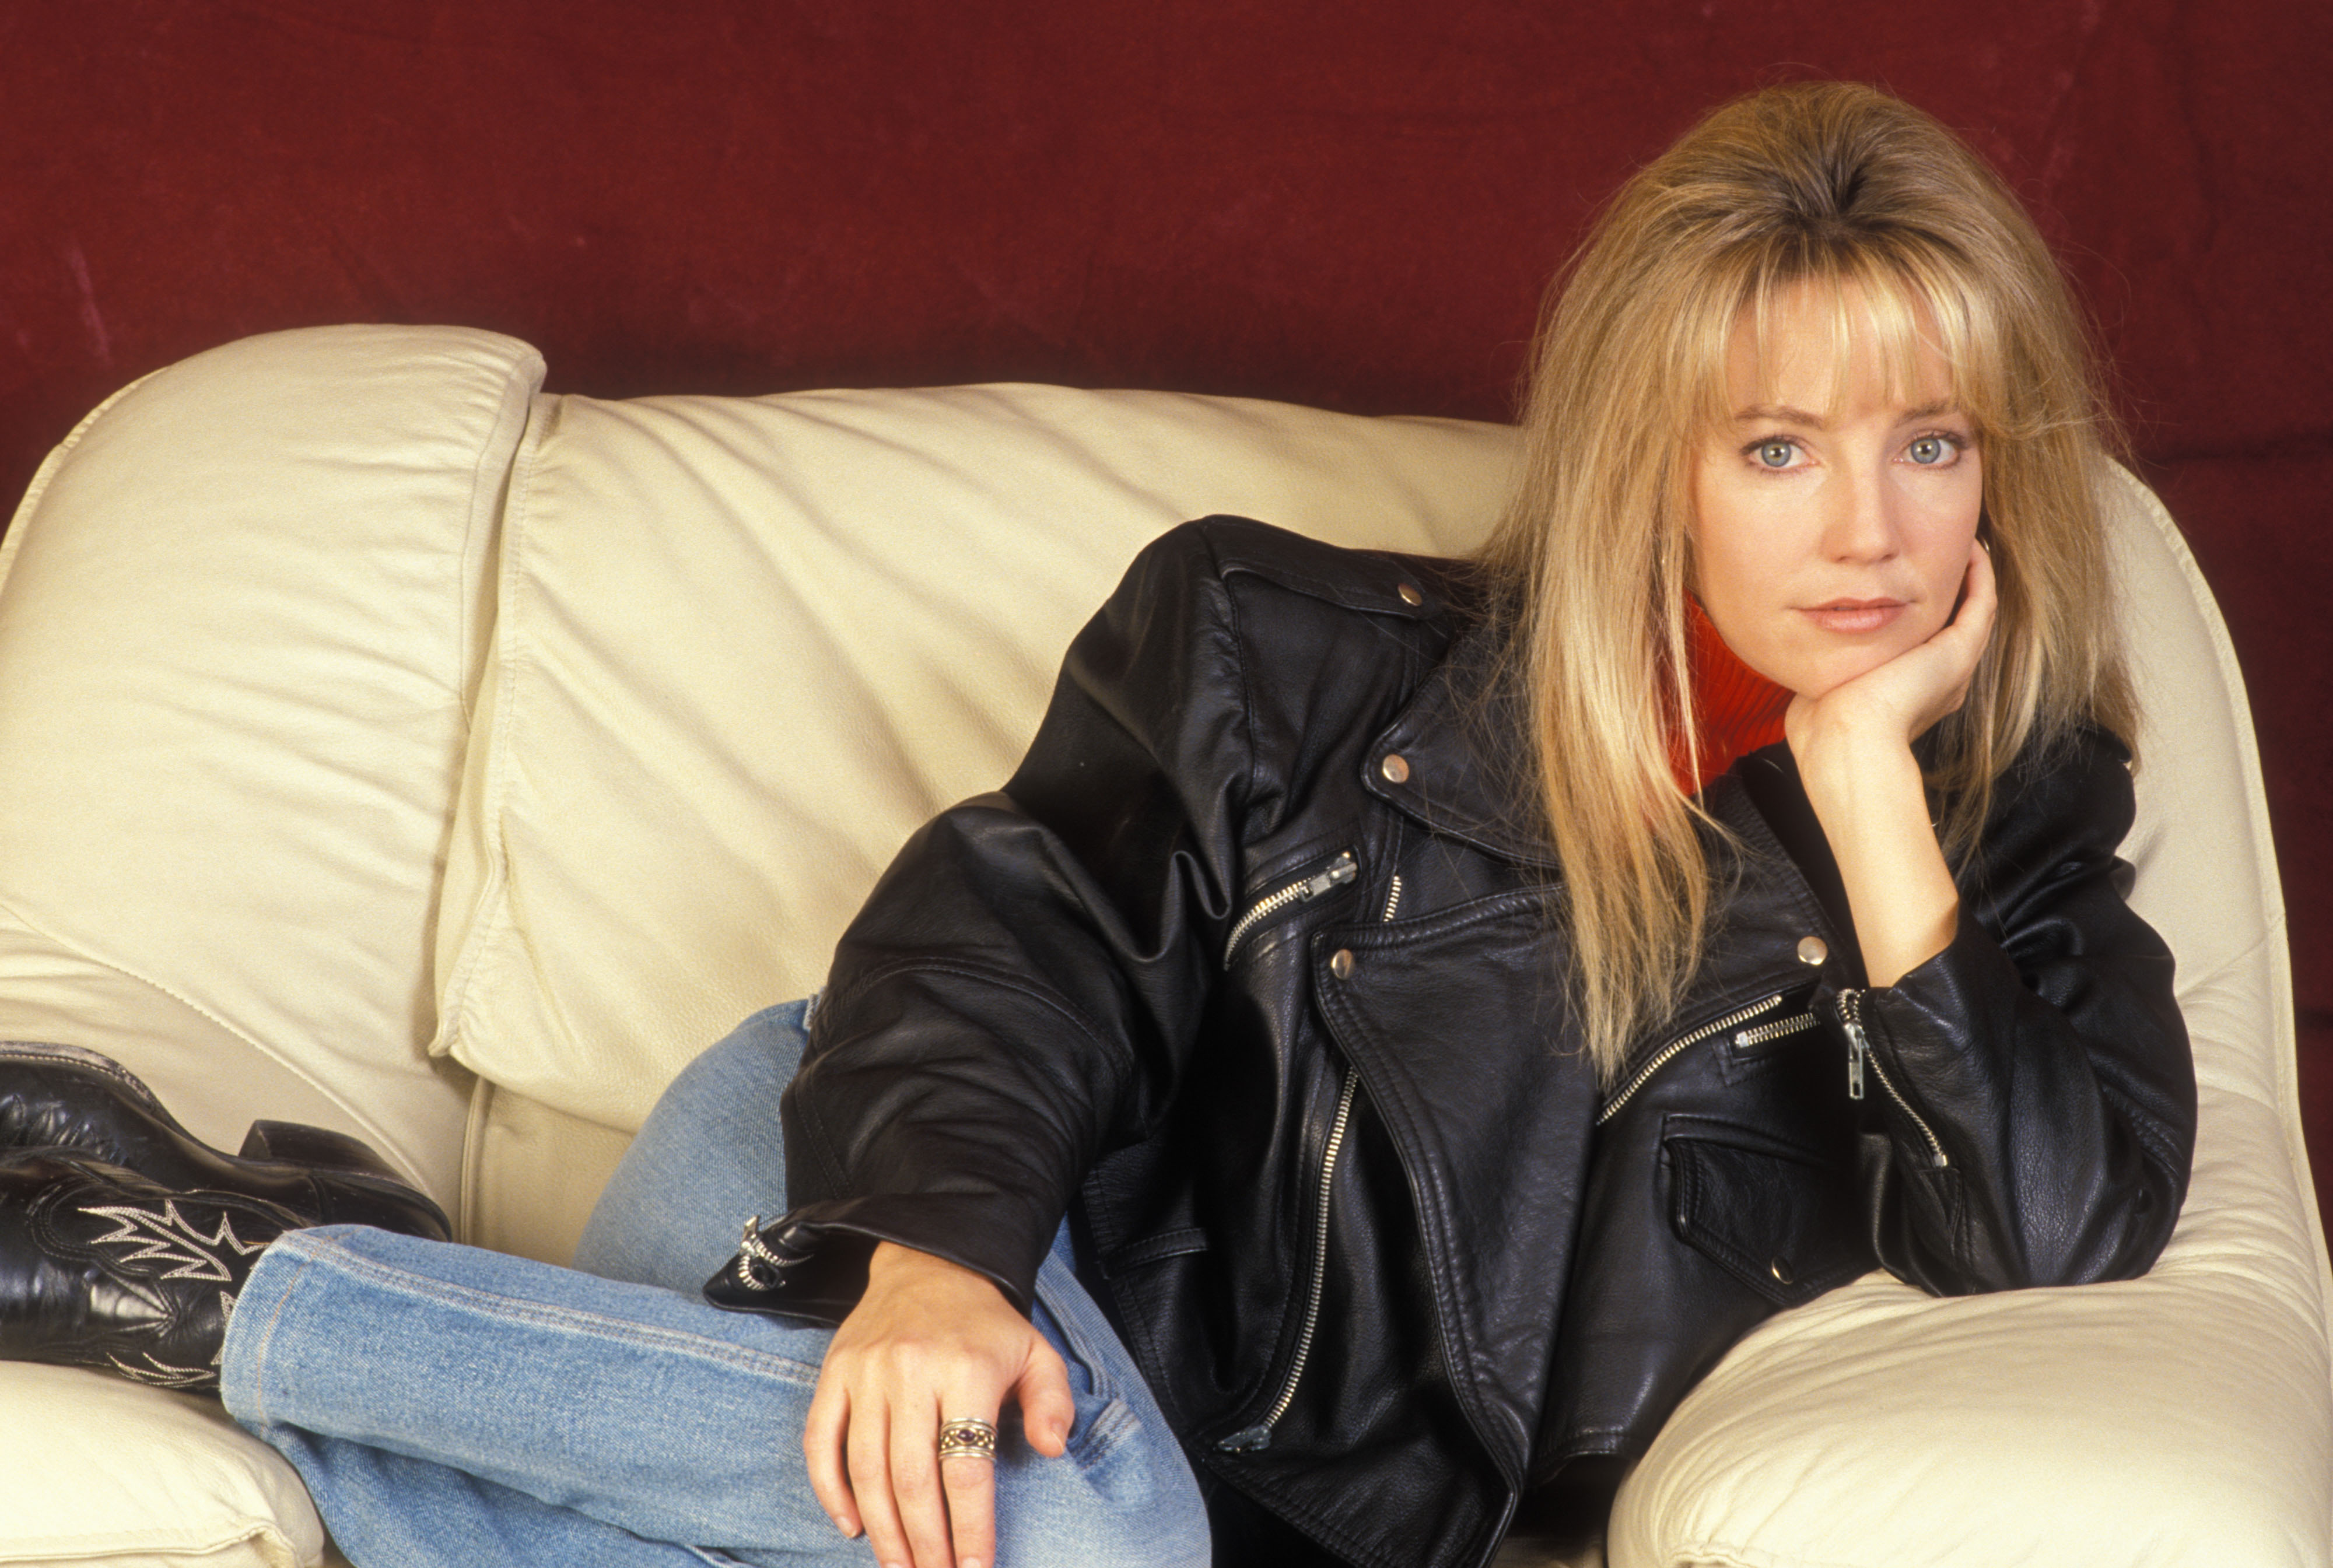 4000x2689 - Heather Locklear Wallpapers 9